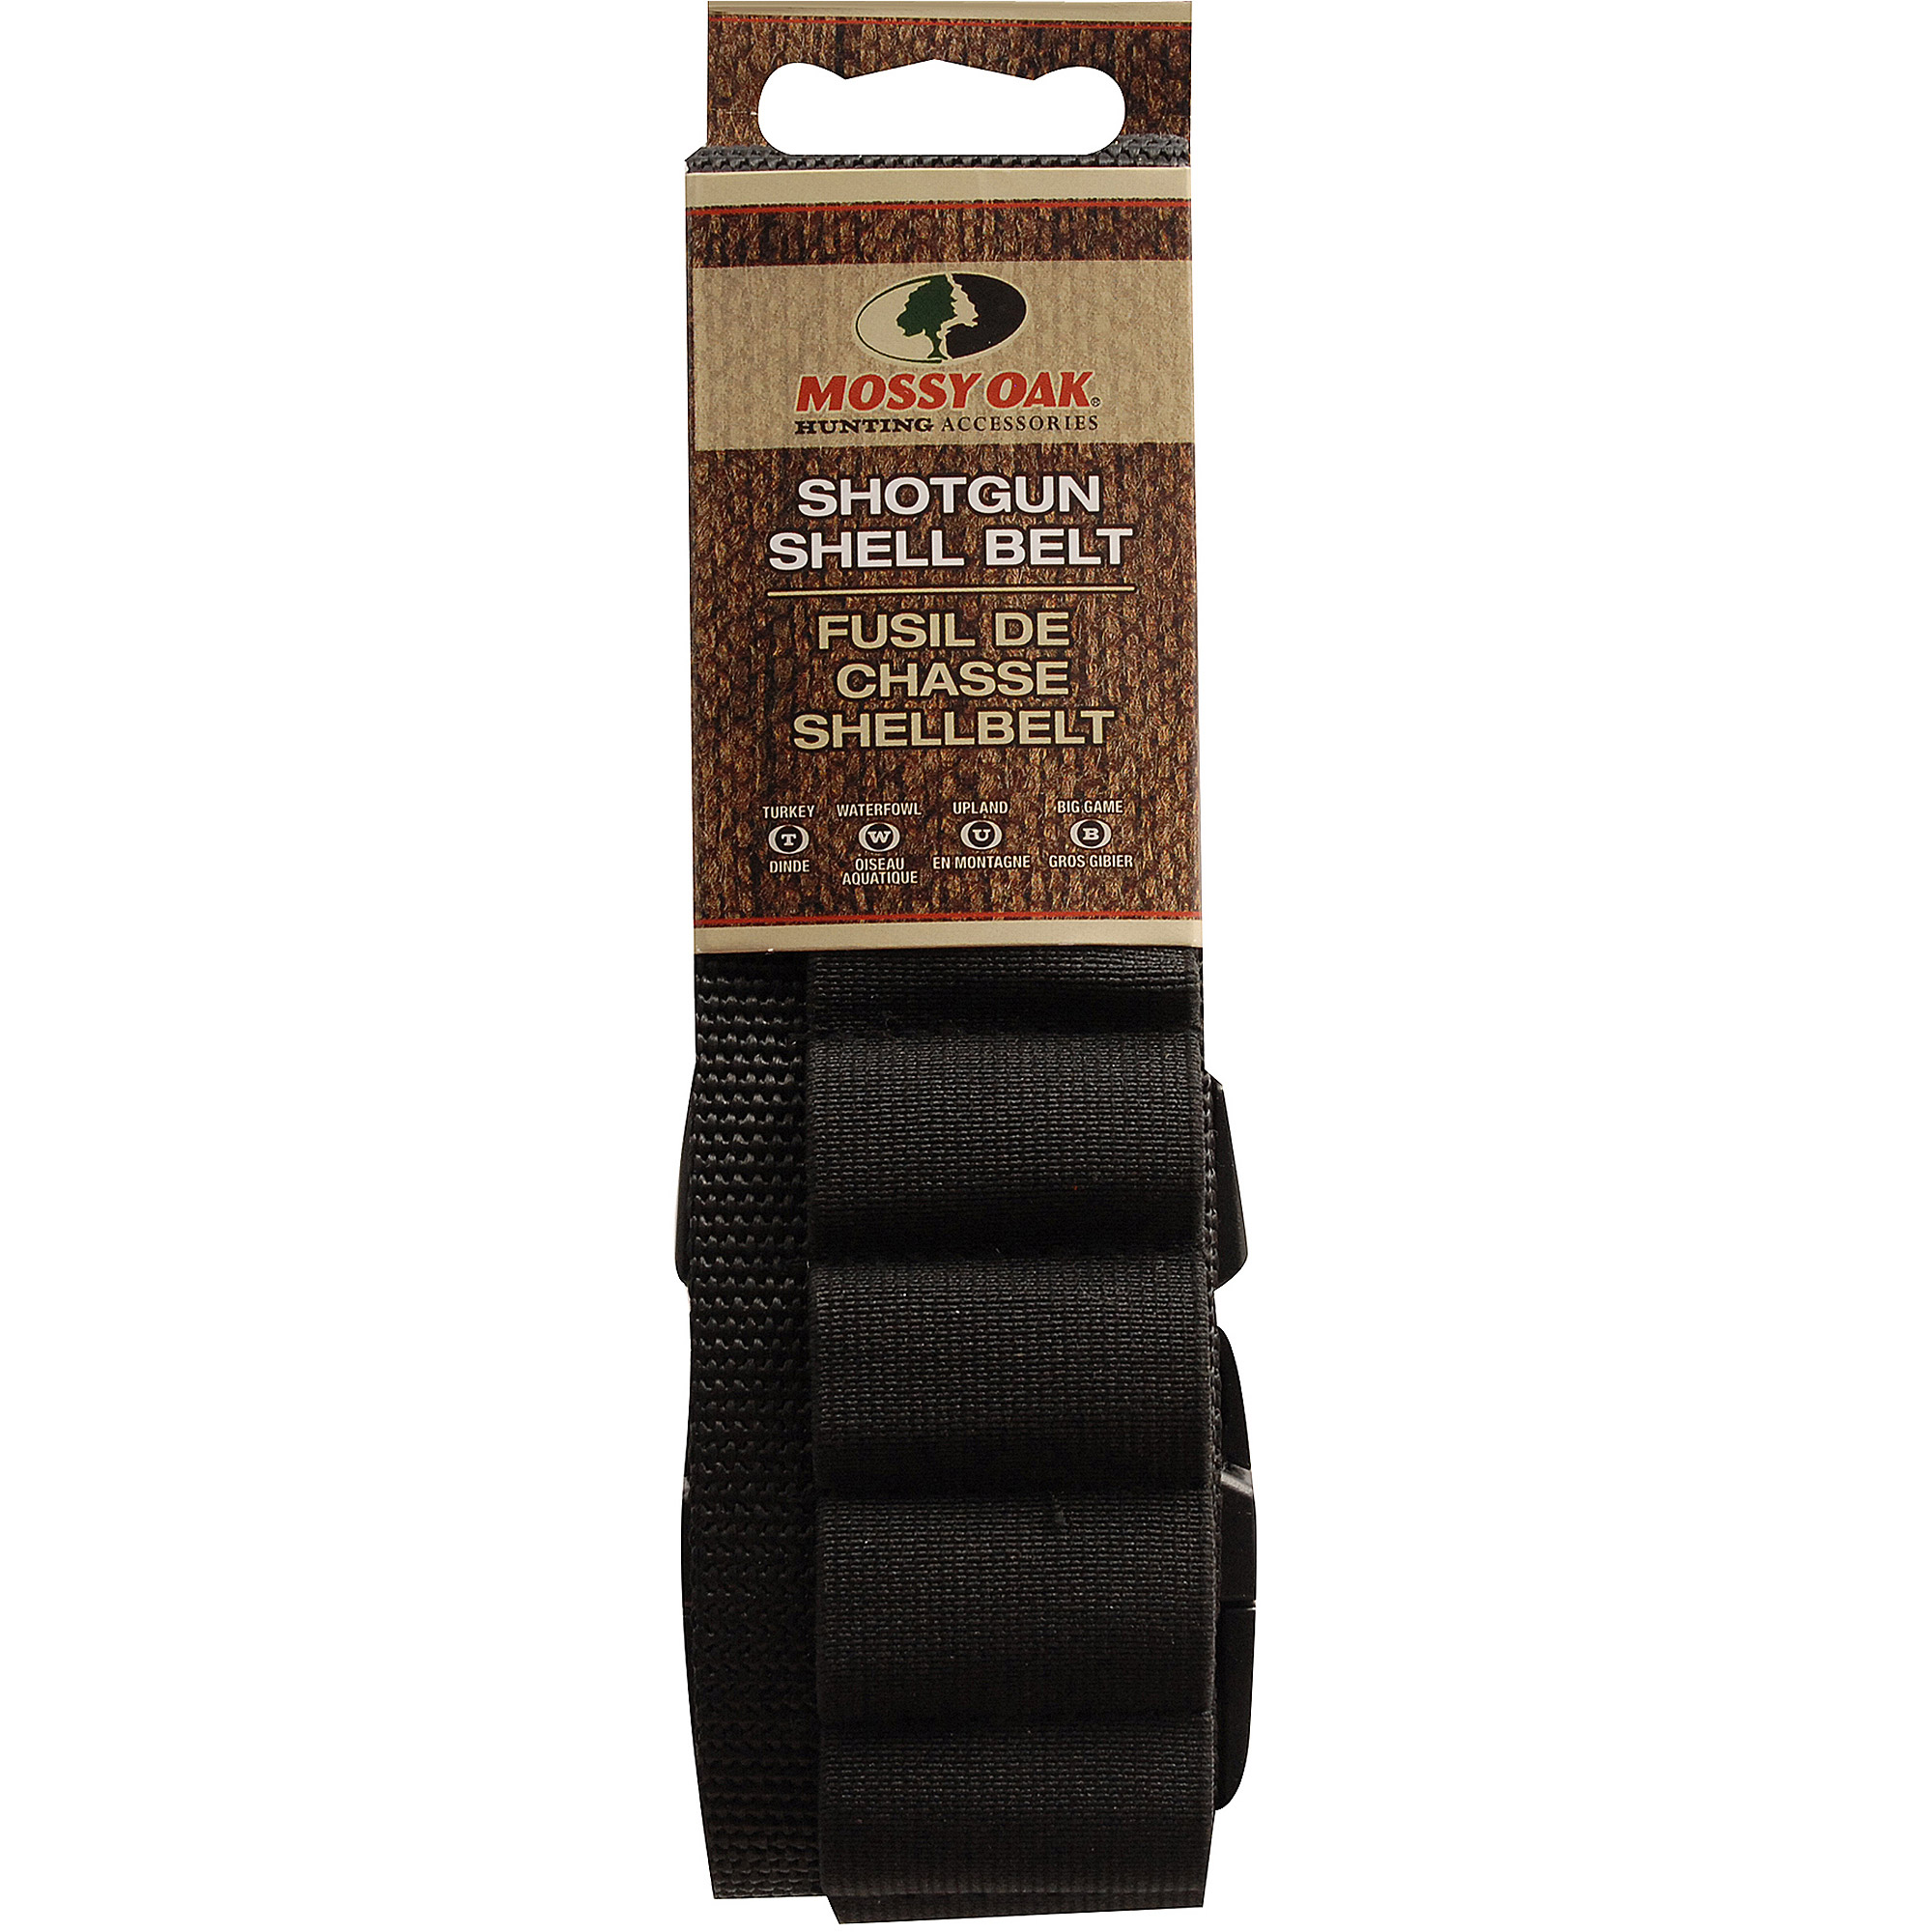 mossy oak shotgun shell belt - walmart